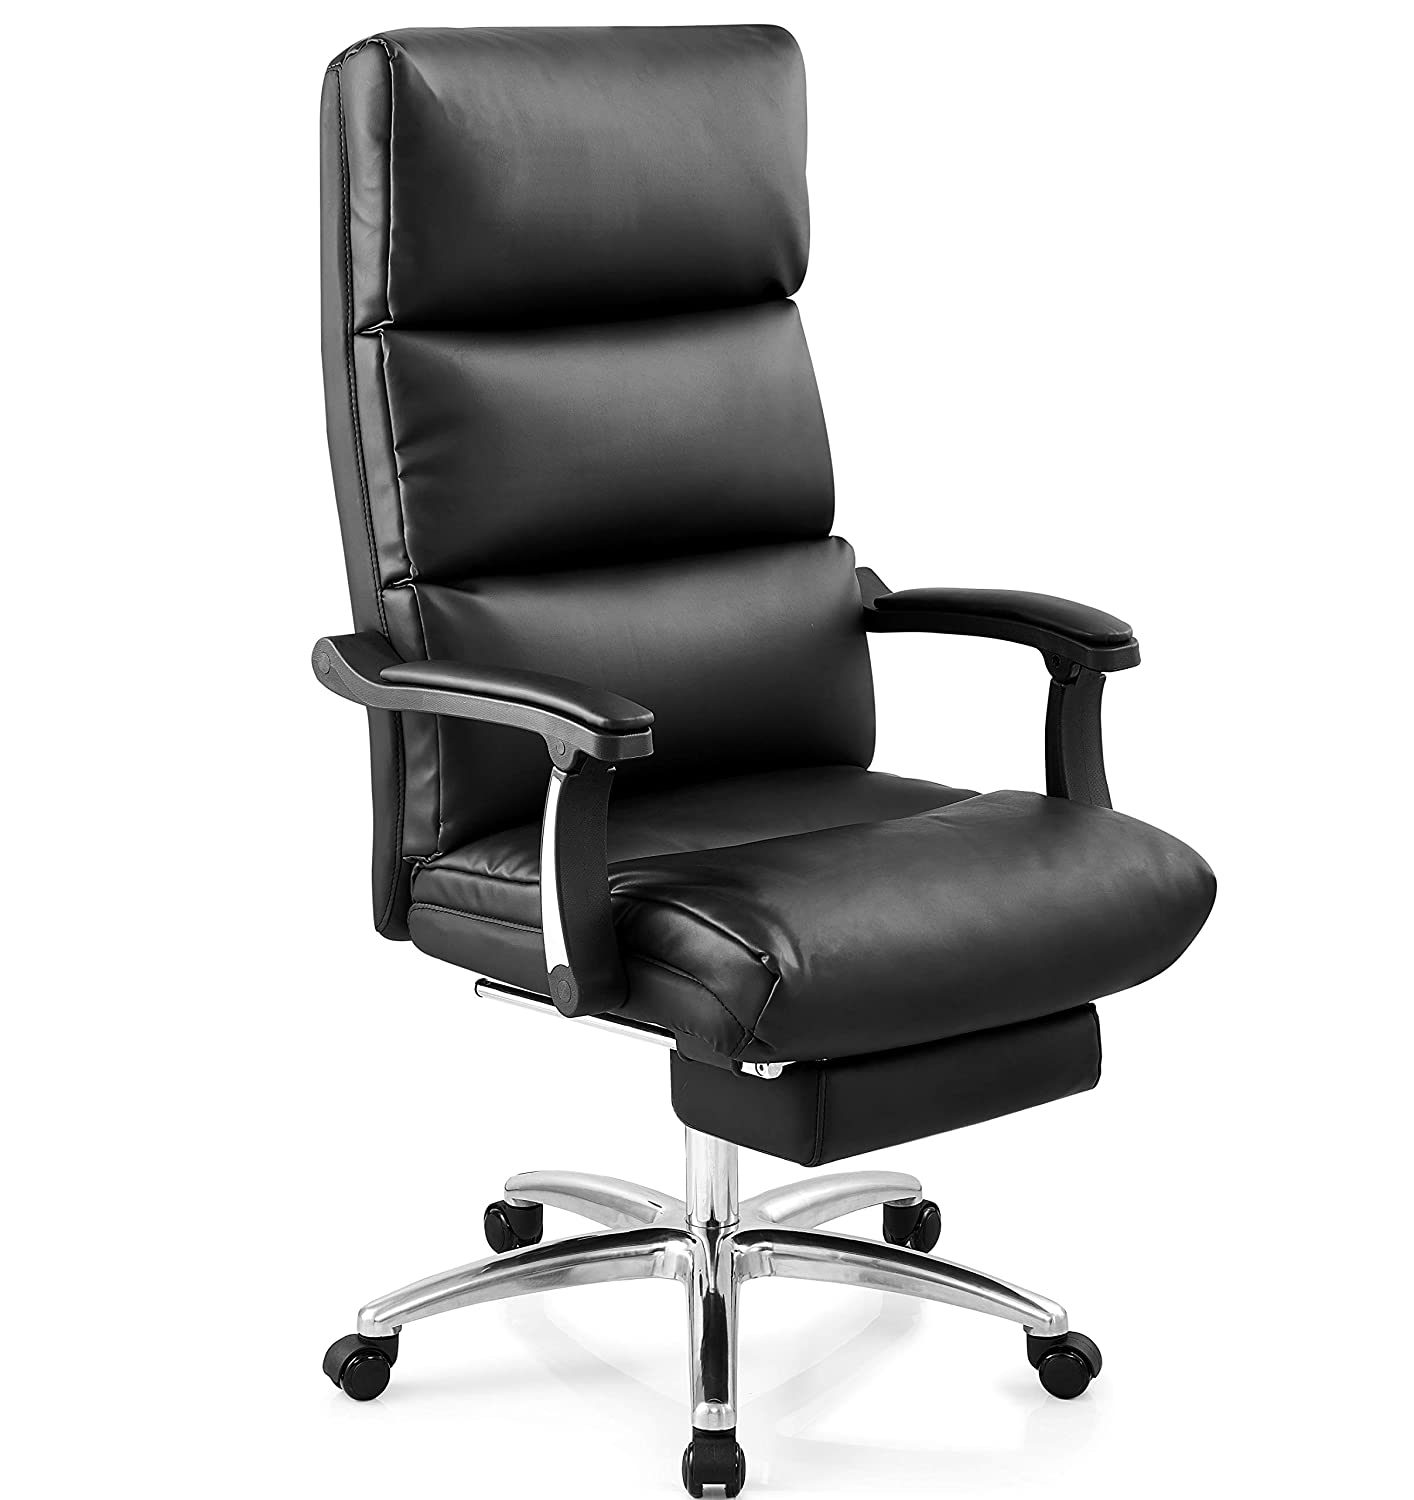 Ticova Executive Office Chair High Back Leather Office Chair With Footrest And Thick Padding Reclining Computer Chair With Textured Leather And Ergonomic Segmented Back Managerial Executive Chairs Chairs Sofas